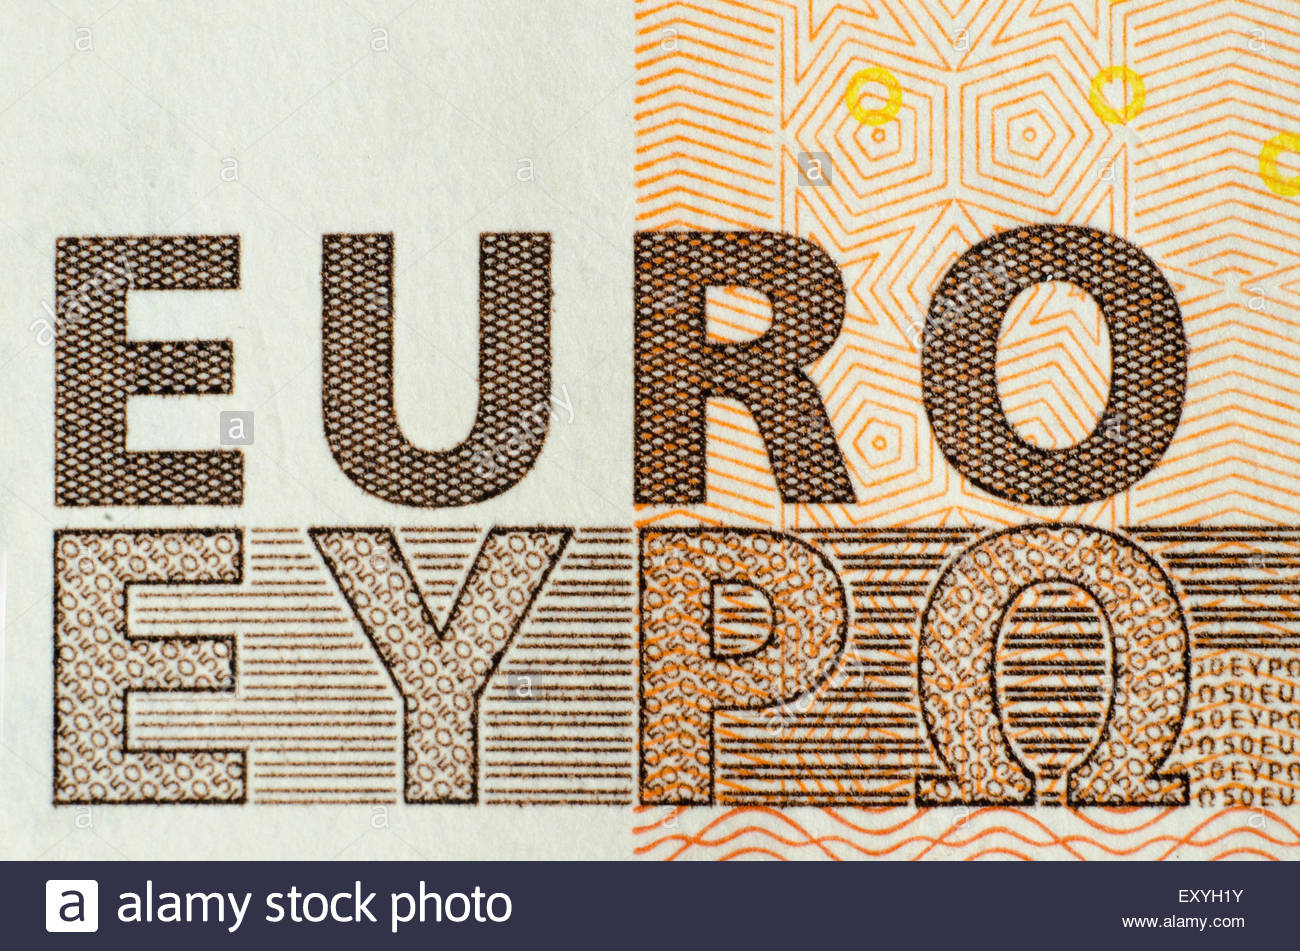 Greek symbols in word images symbol and sign ideas euro word international and greek symbols in an 50 euro banknote euro word international and greek buycottarizona